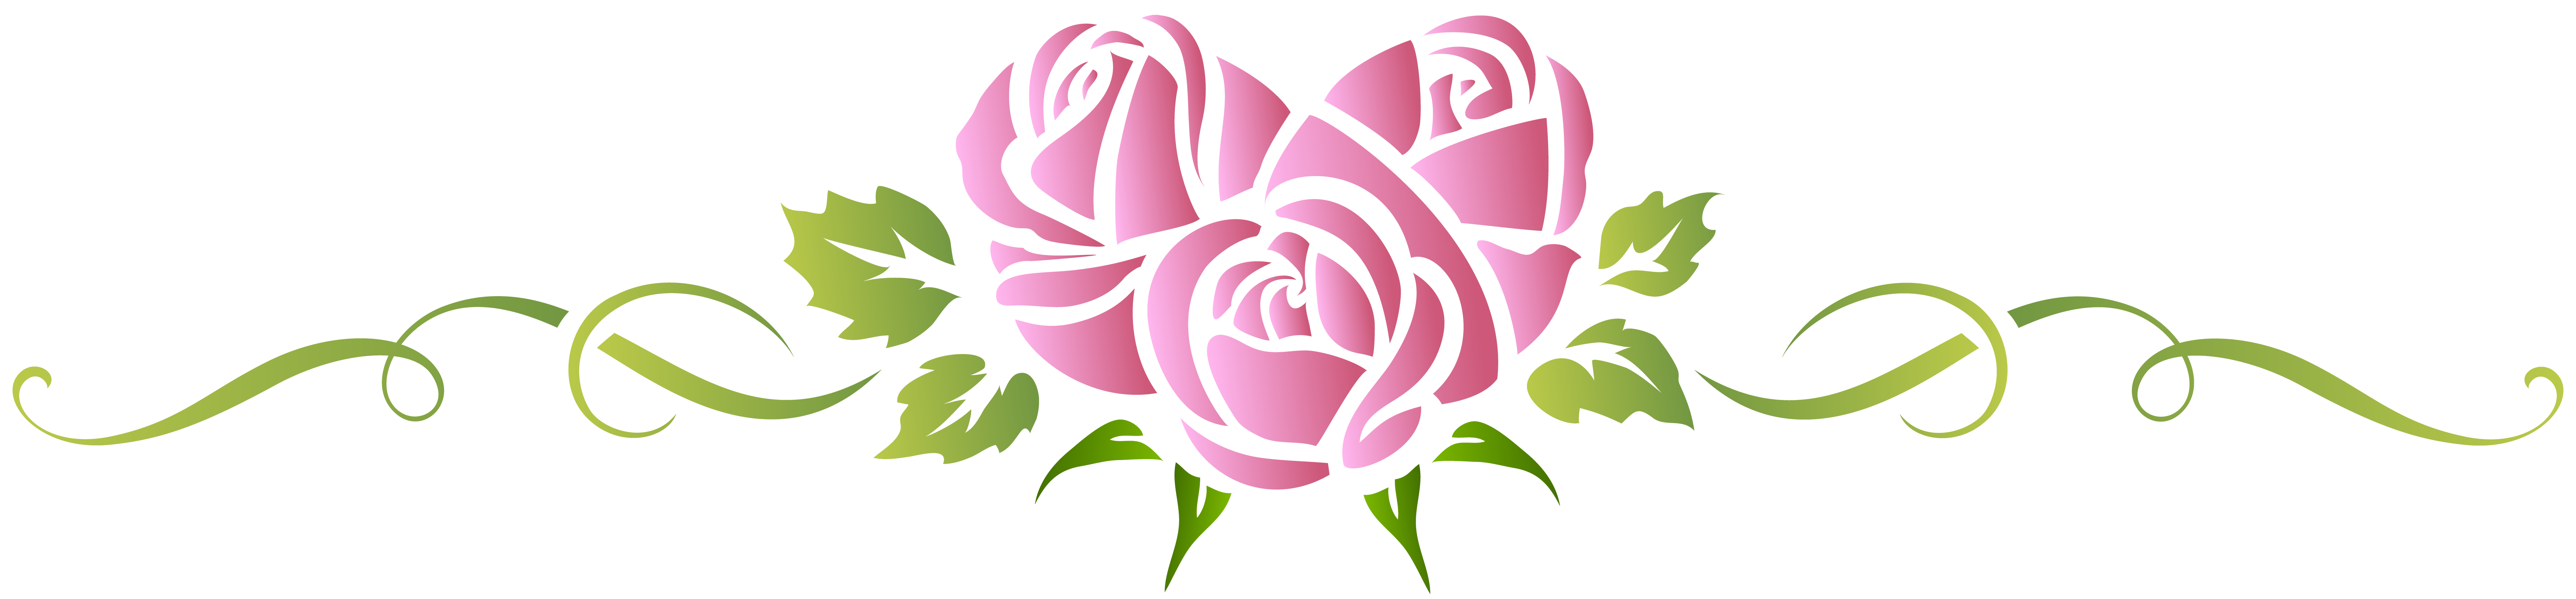 Heart pink floral ornament. Clipart rose minimalist